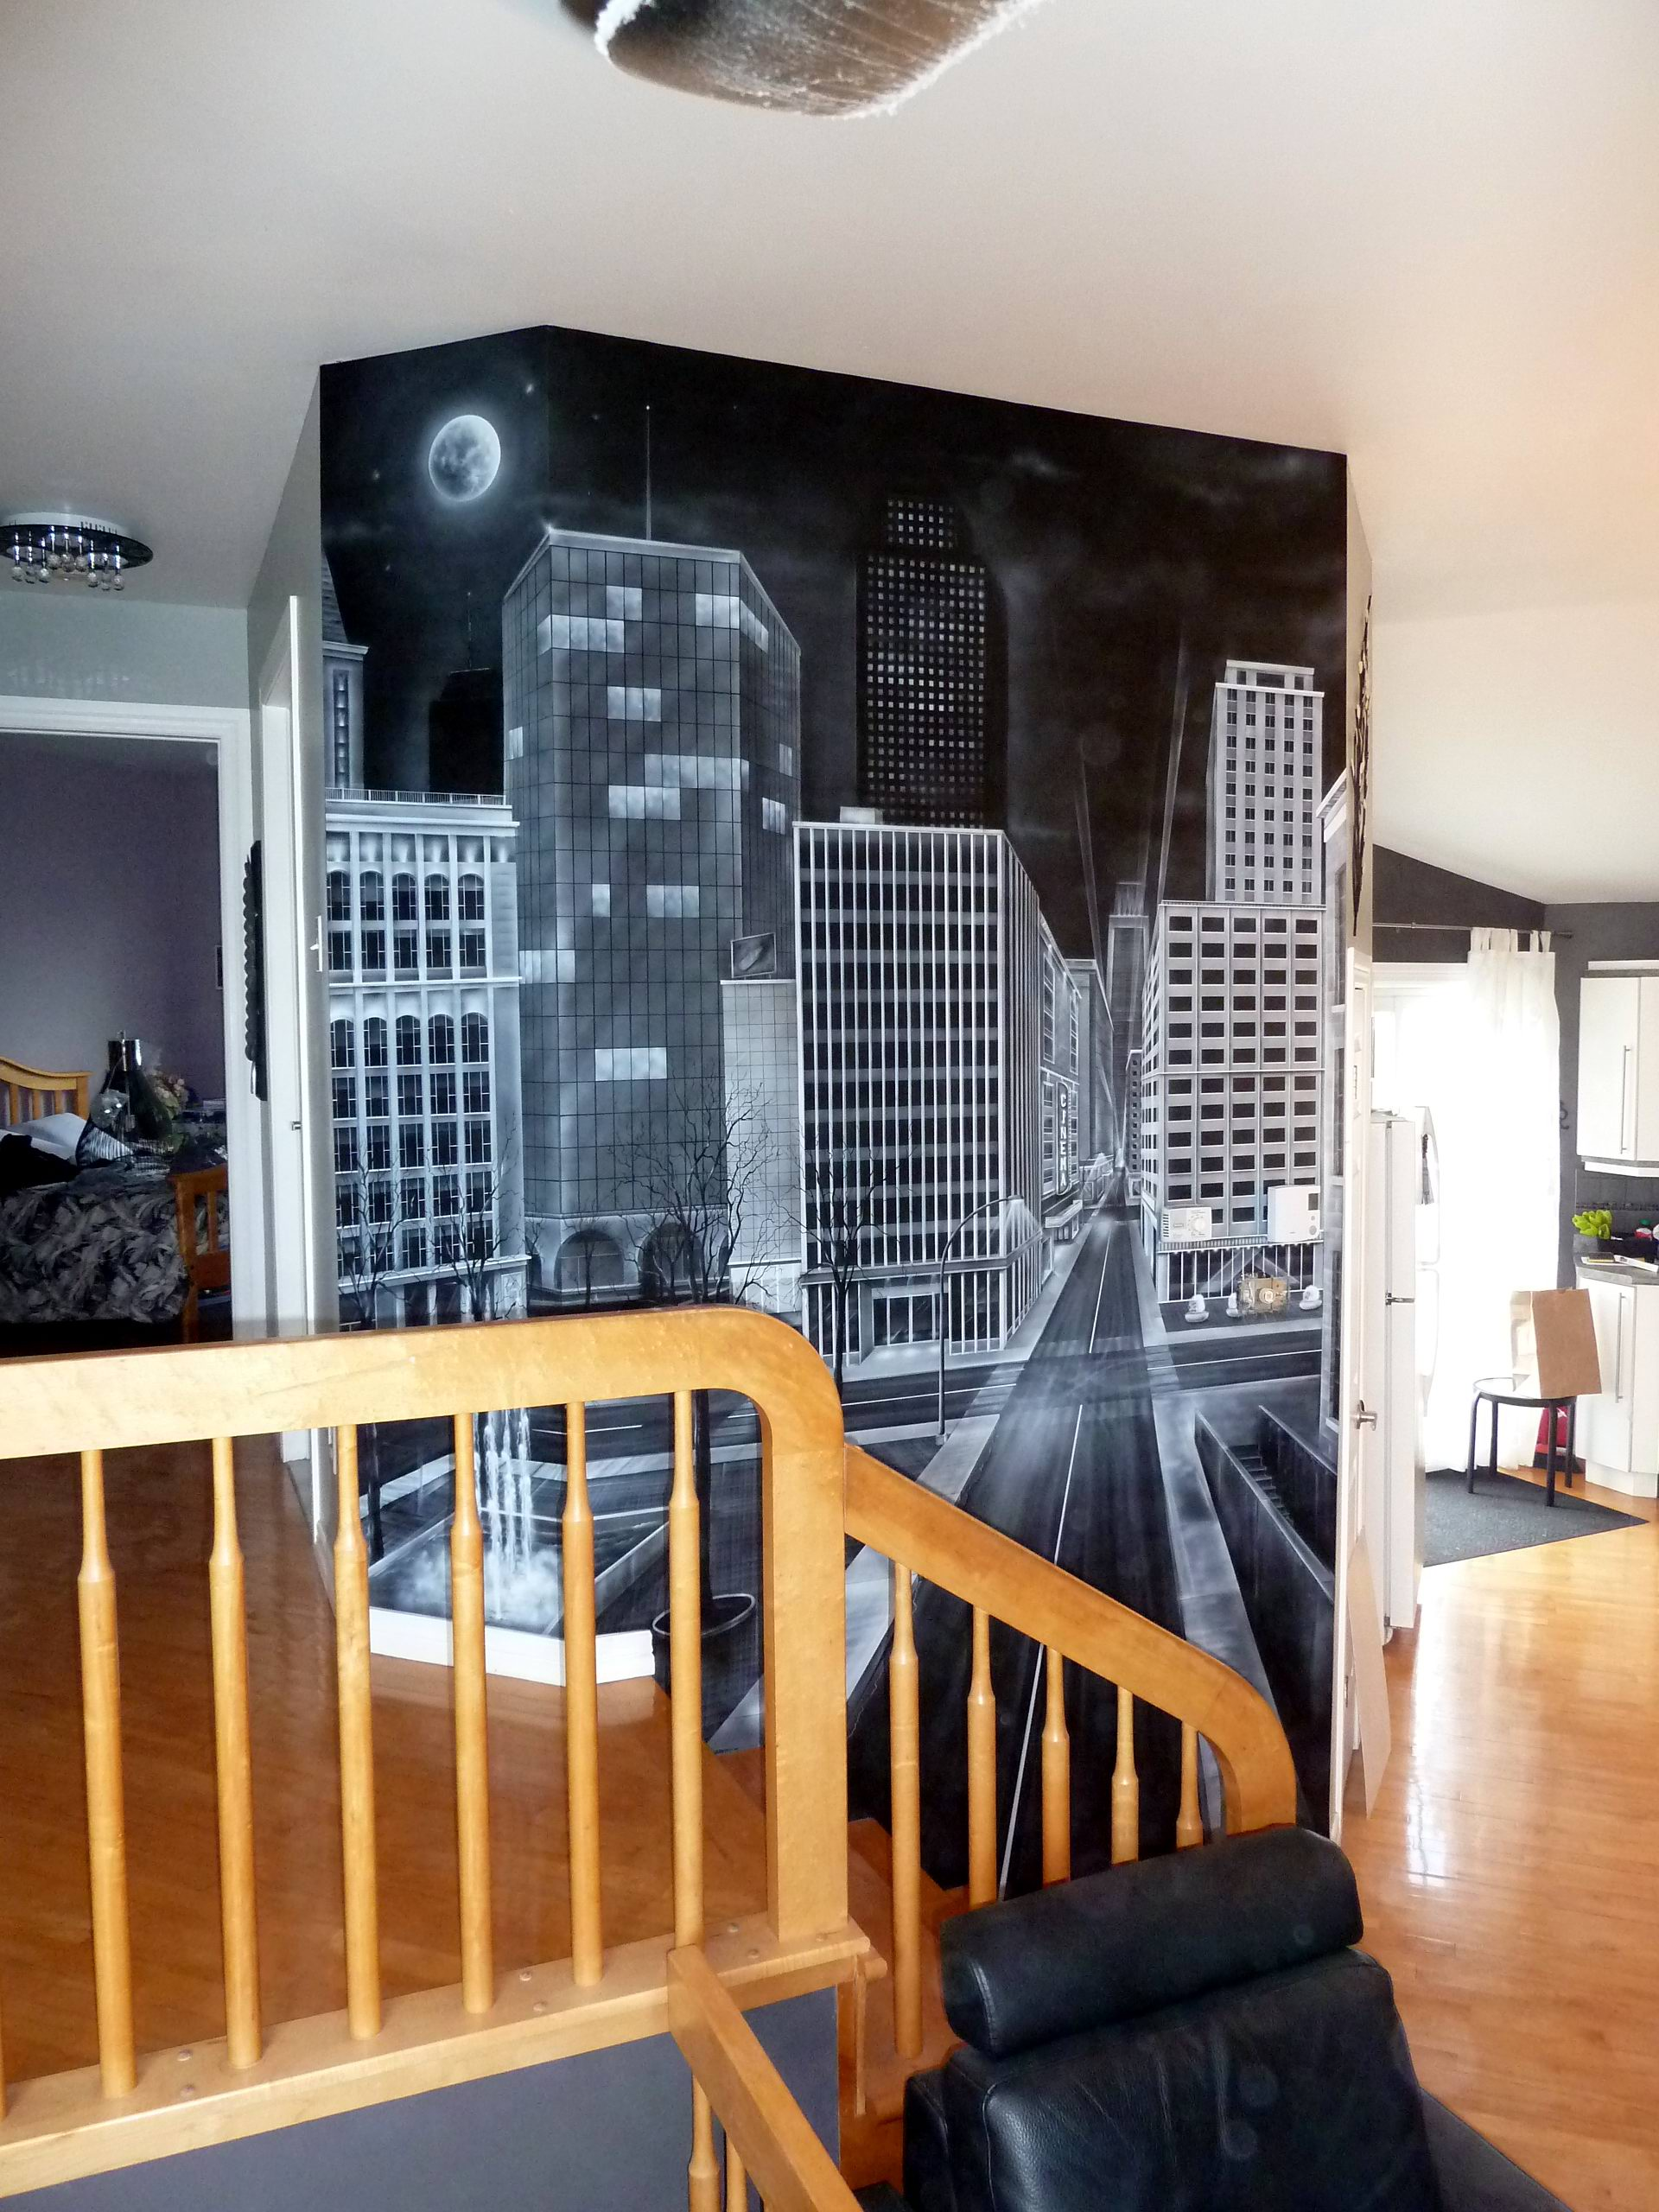 trompe oeil mural interieur latest trompe luoeil mural. Black Bedroom Furniture Sets. Home Design Ideas